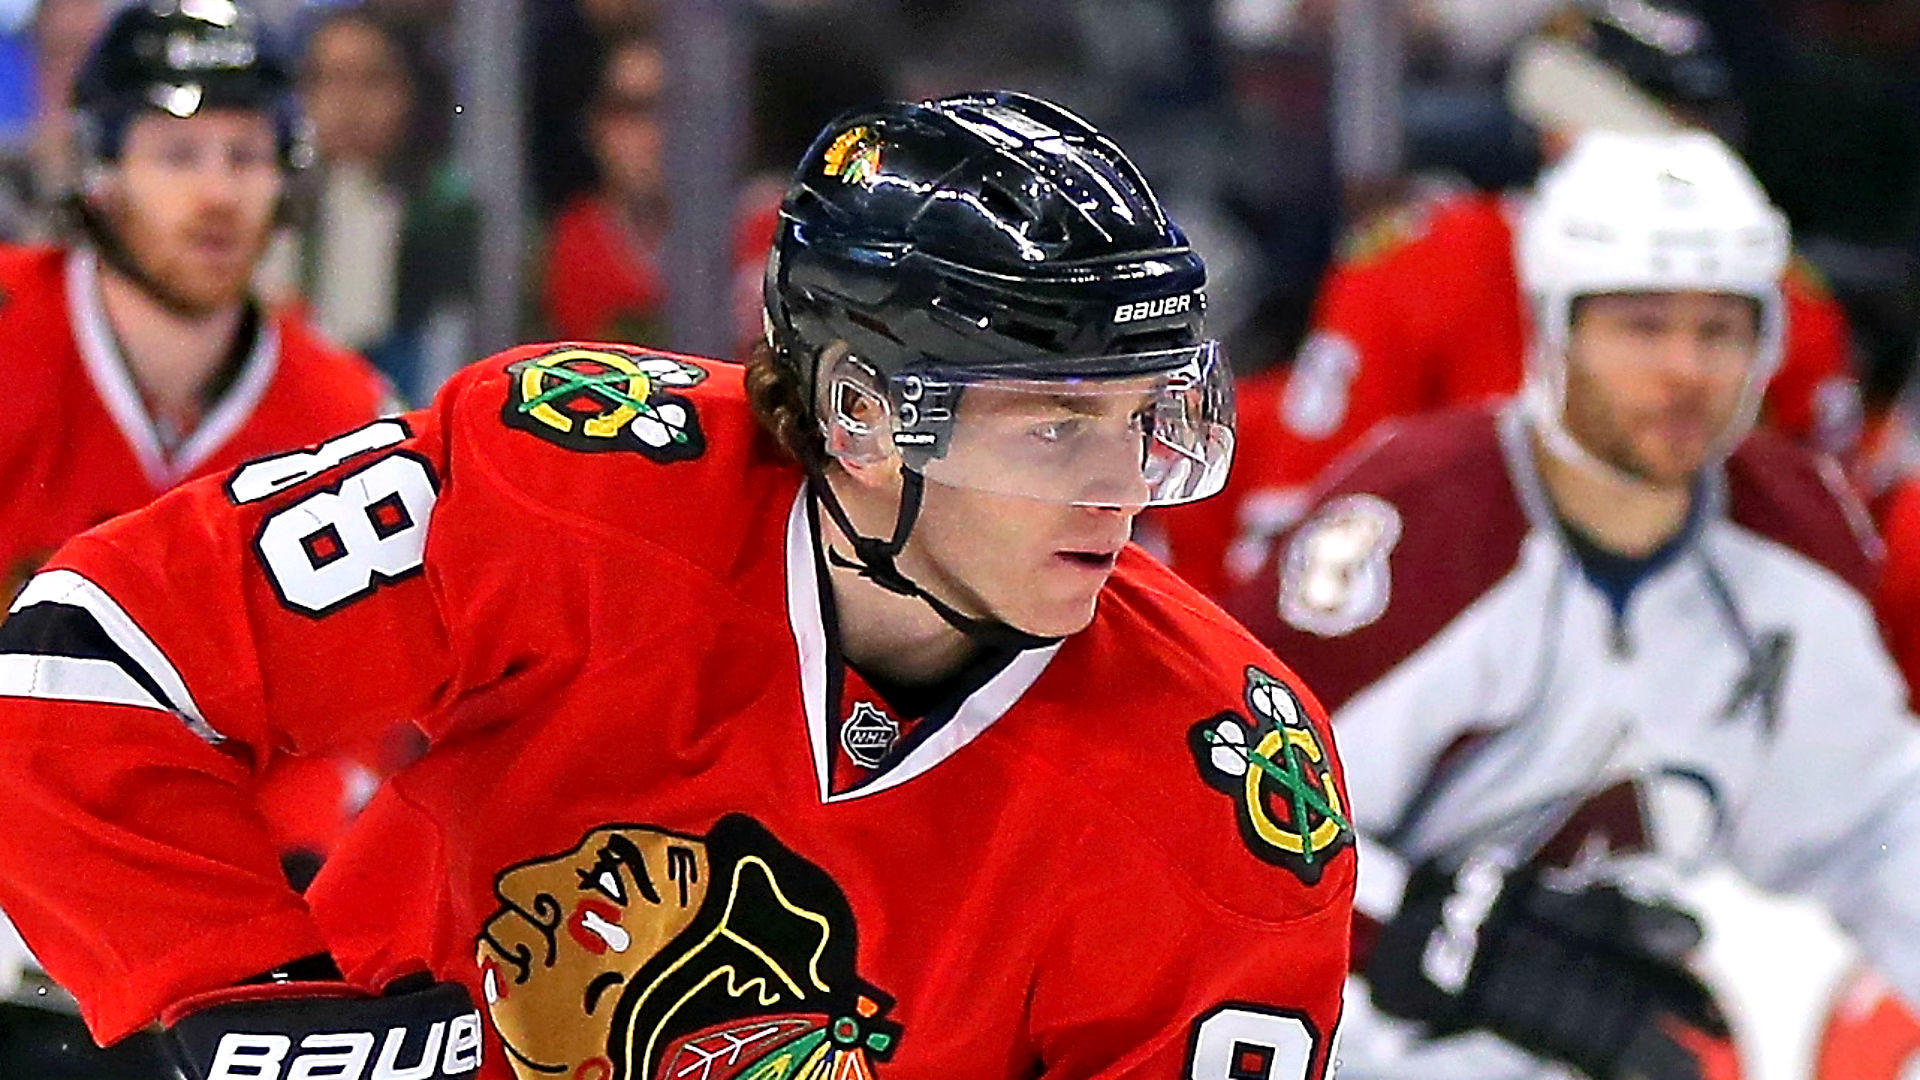 1920x1080 Patrick Kane improving as Blackhawks near Stanley Cup playoffs | Other  Sports | Sporting News